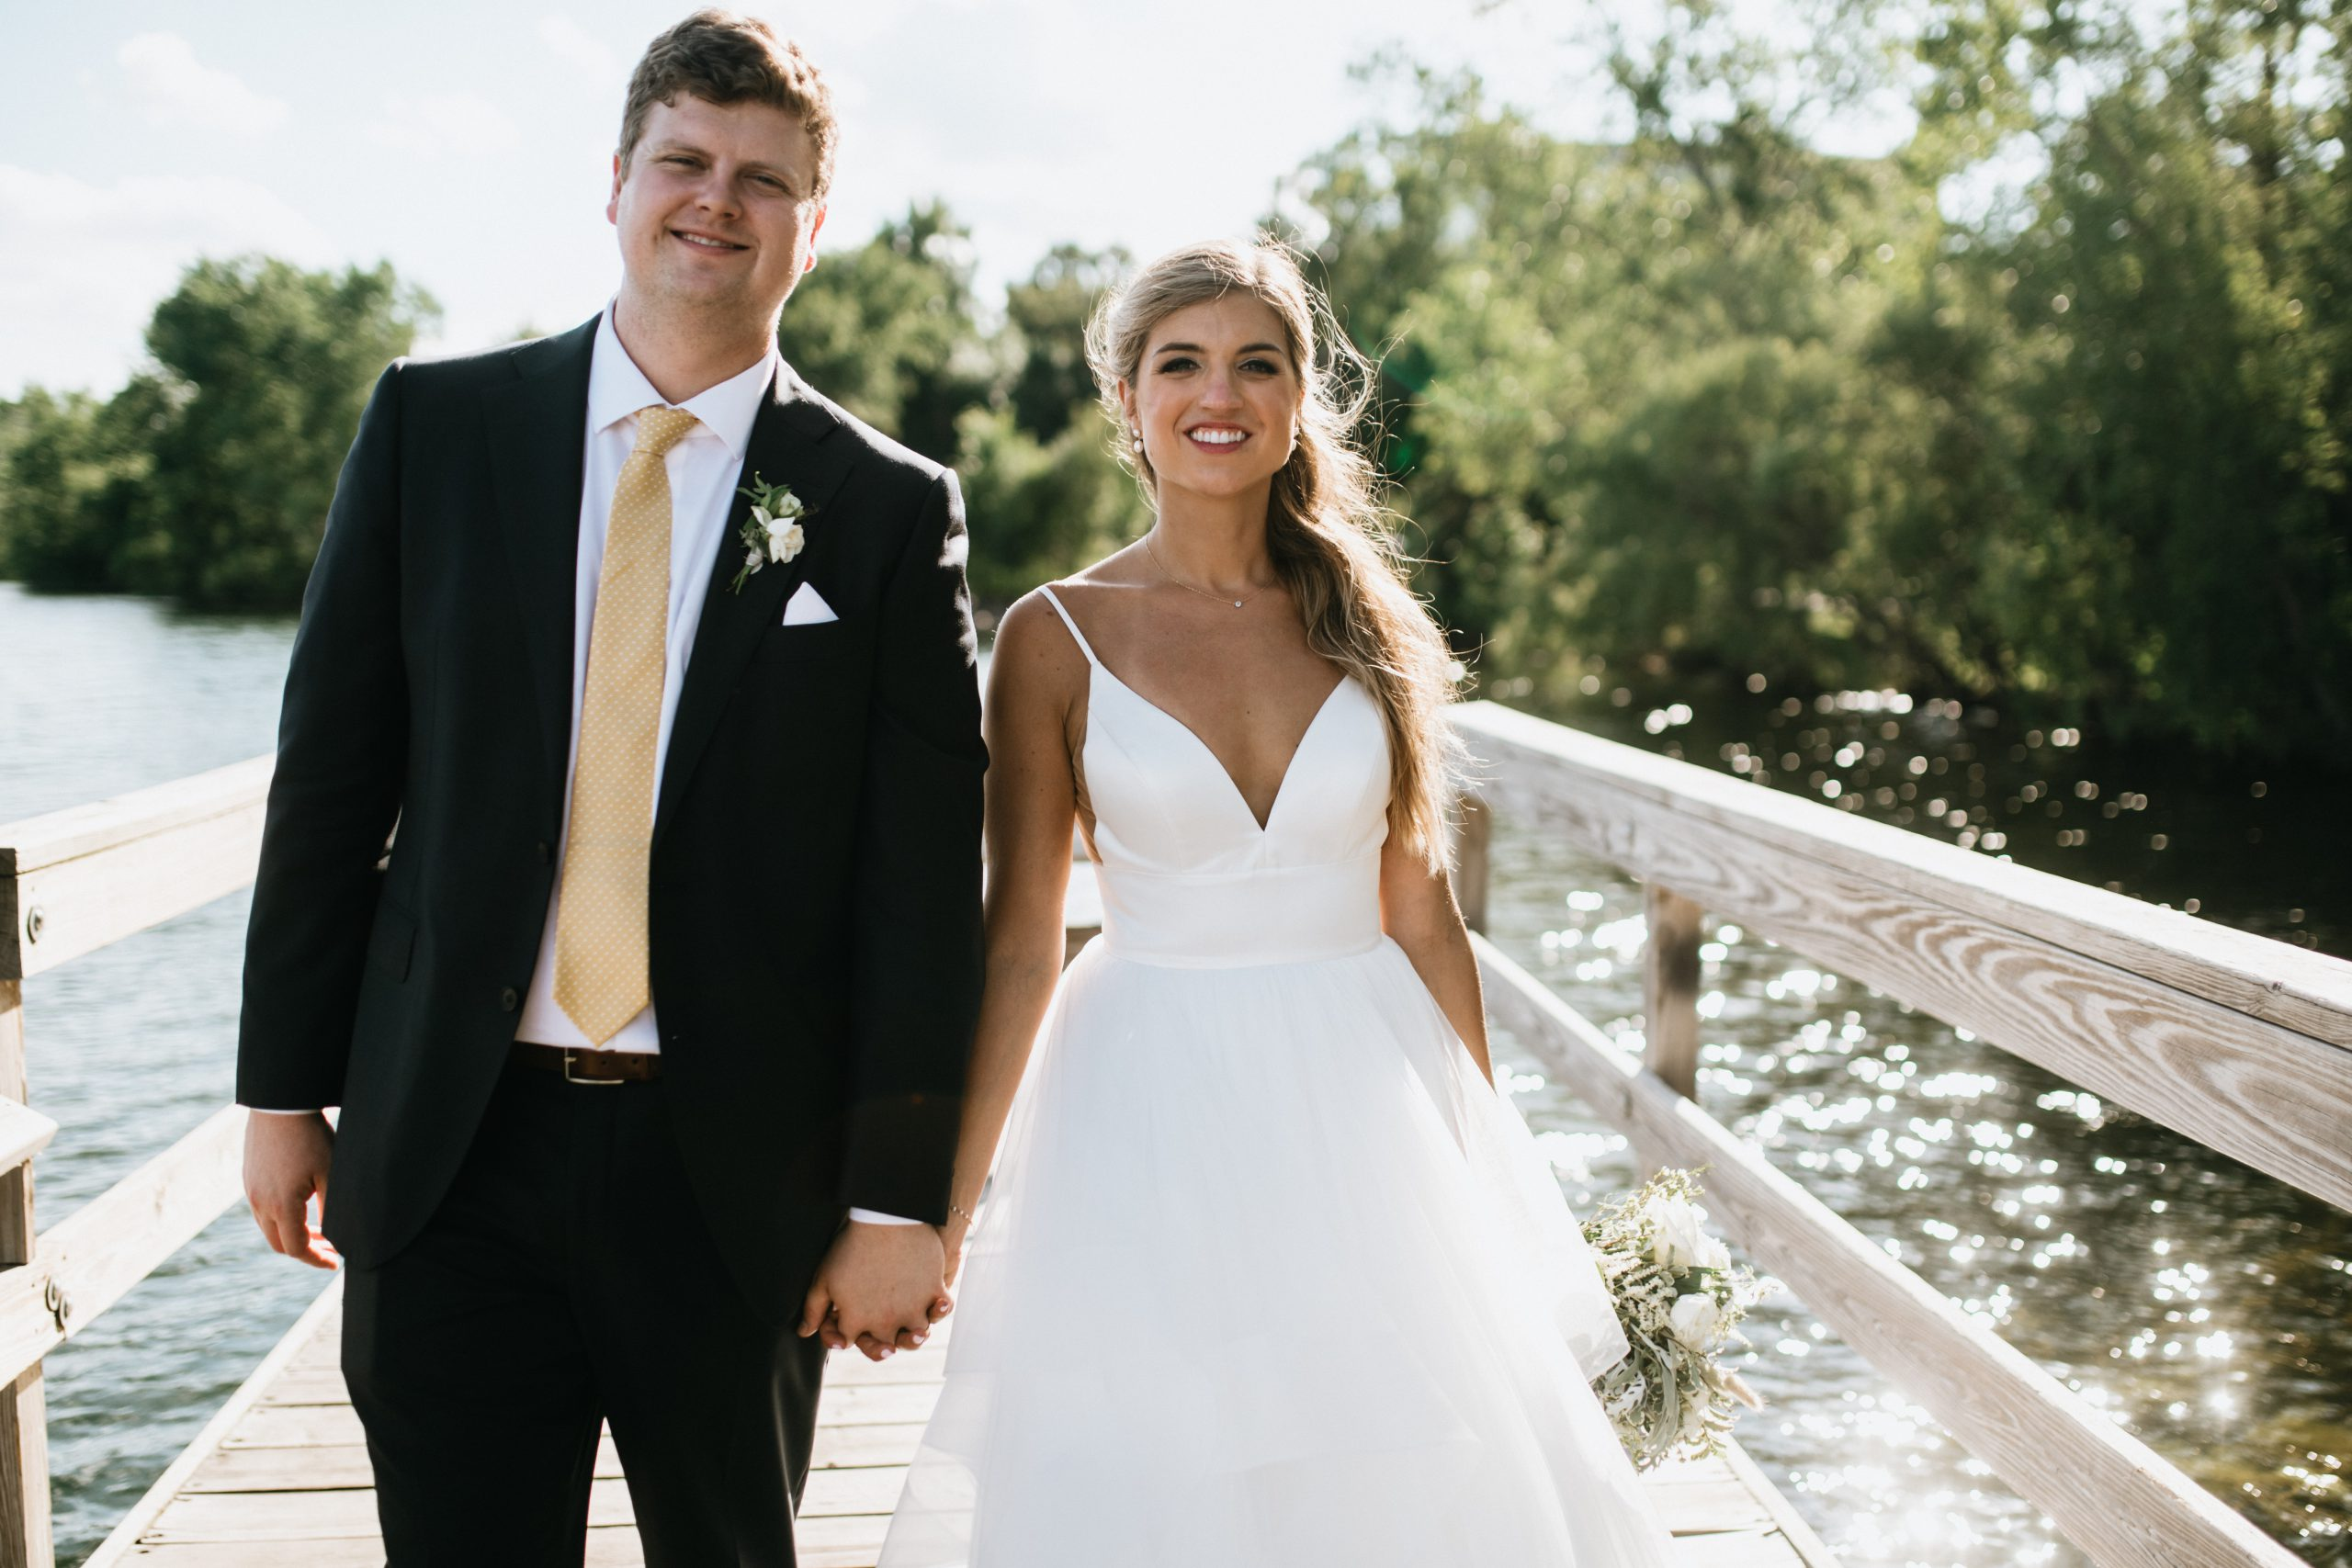 bride and groom walk while holding hands